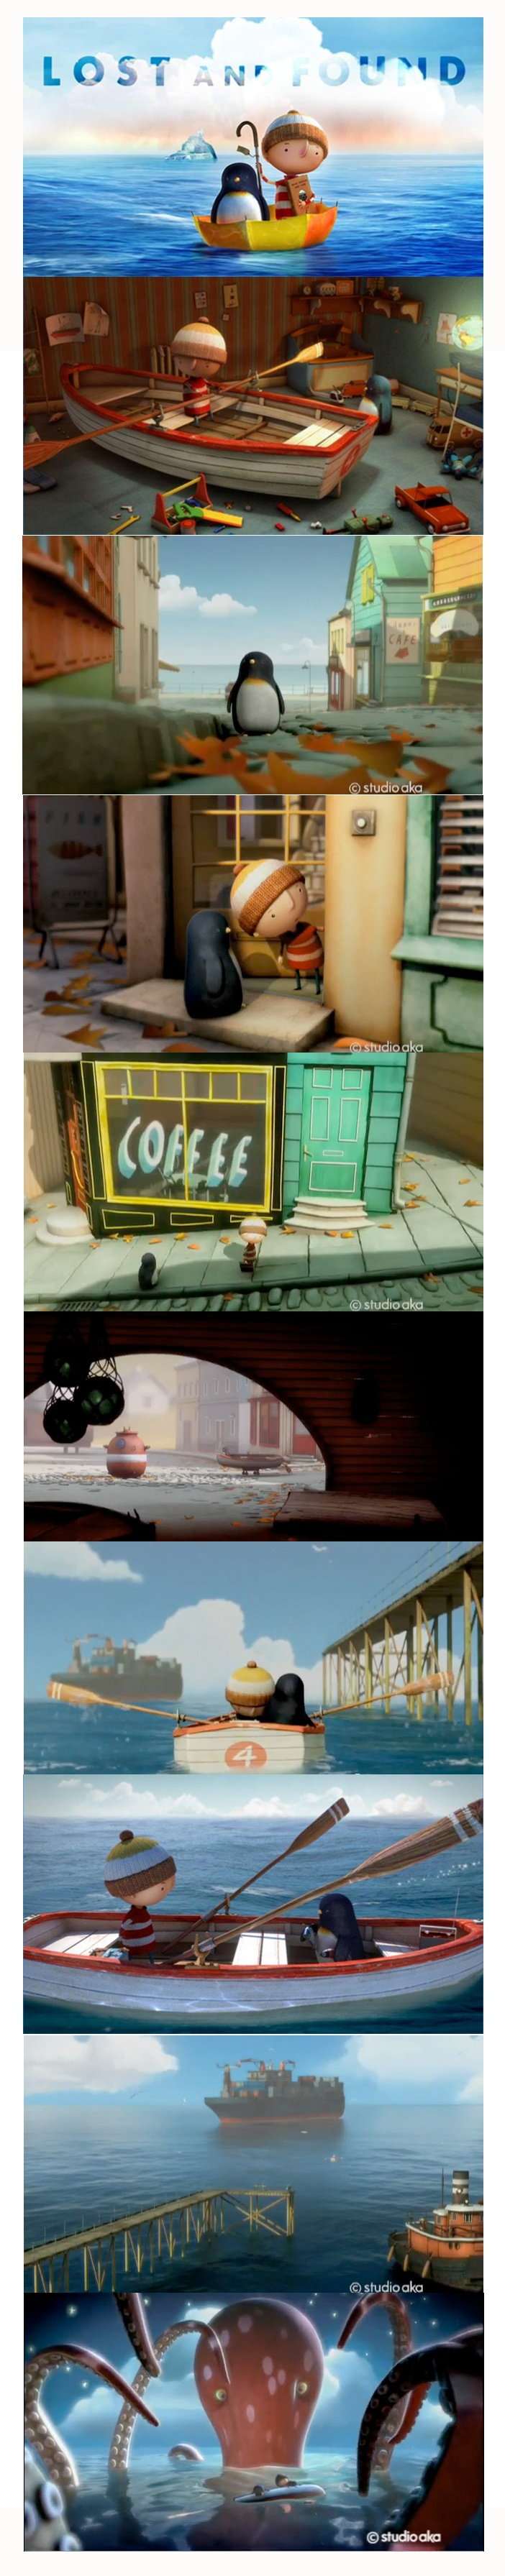 This looks so great!!! Oliver Jeffers. http://www.oliverjeffers.com/picture-books/LOST-AND-FOUND